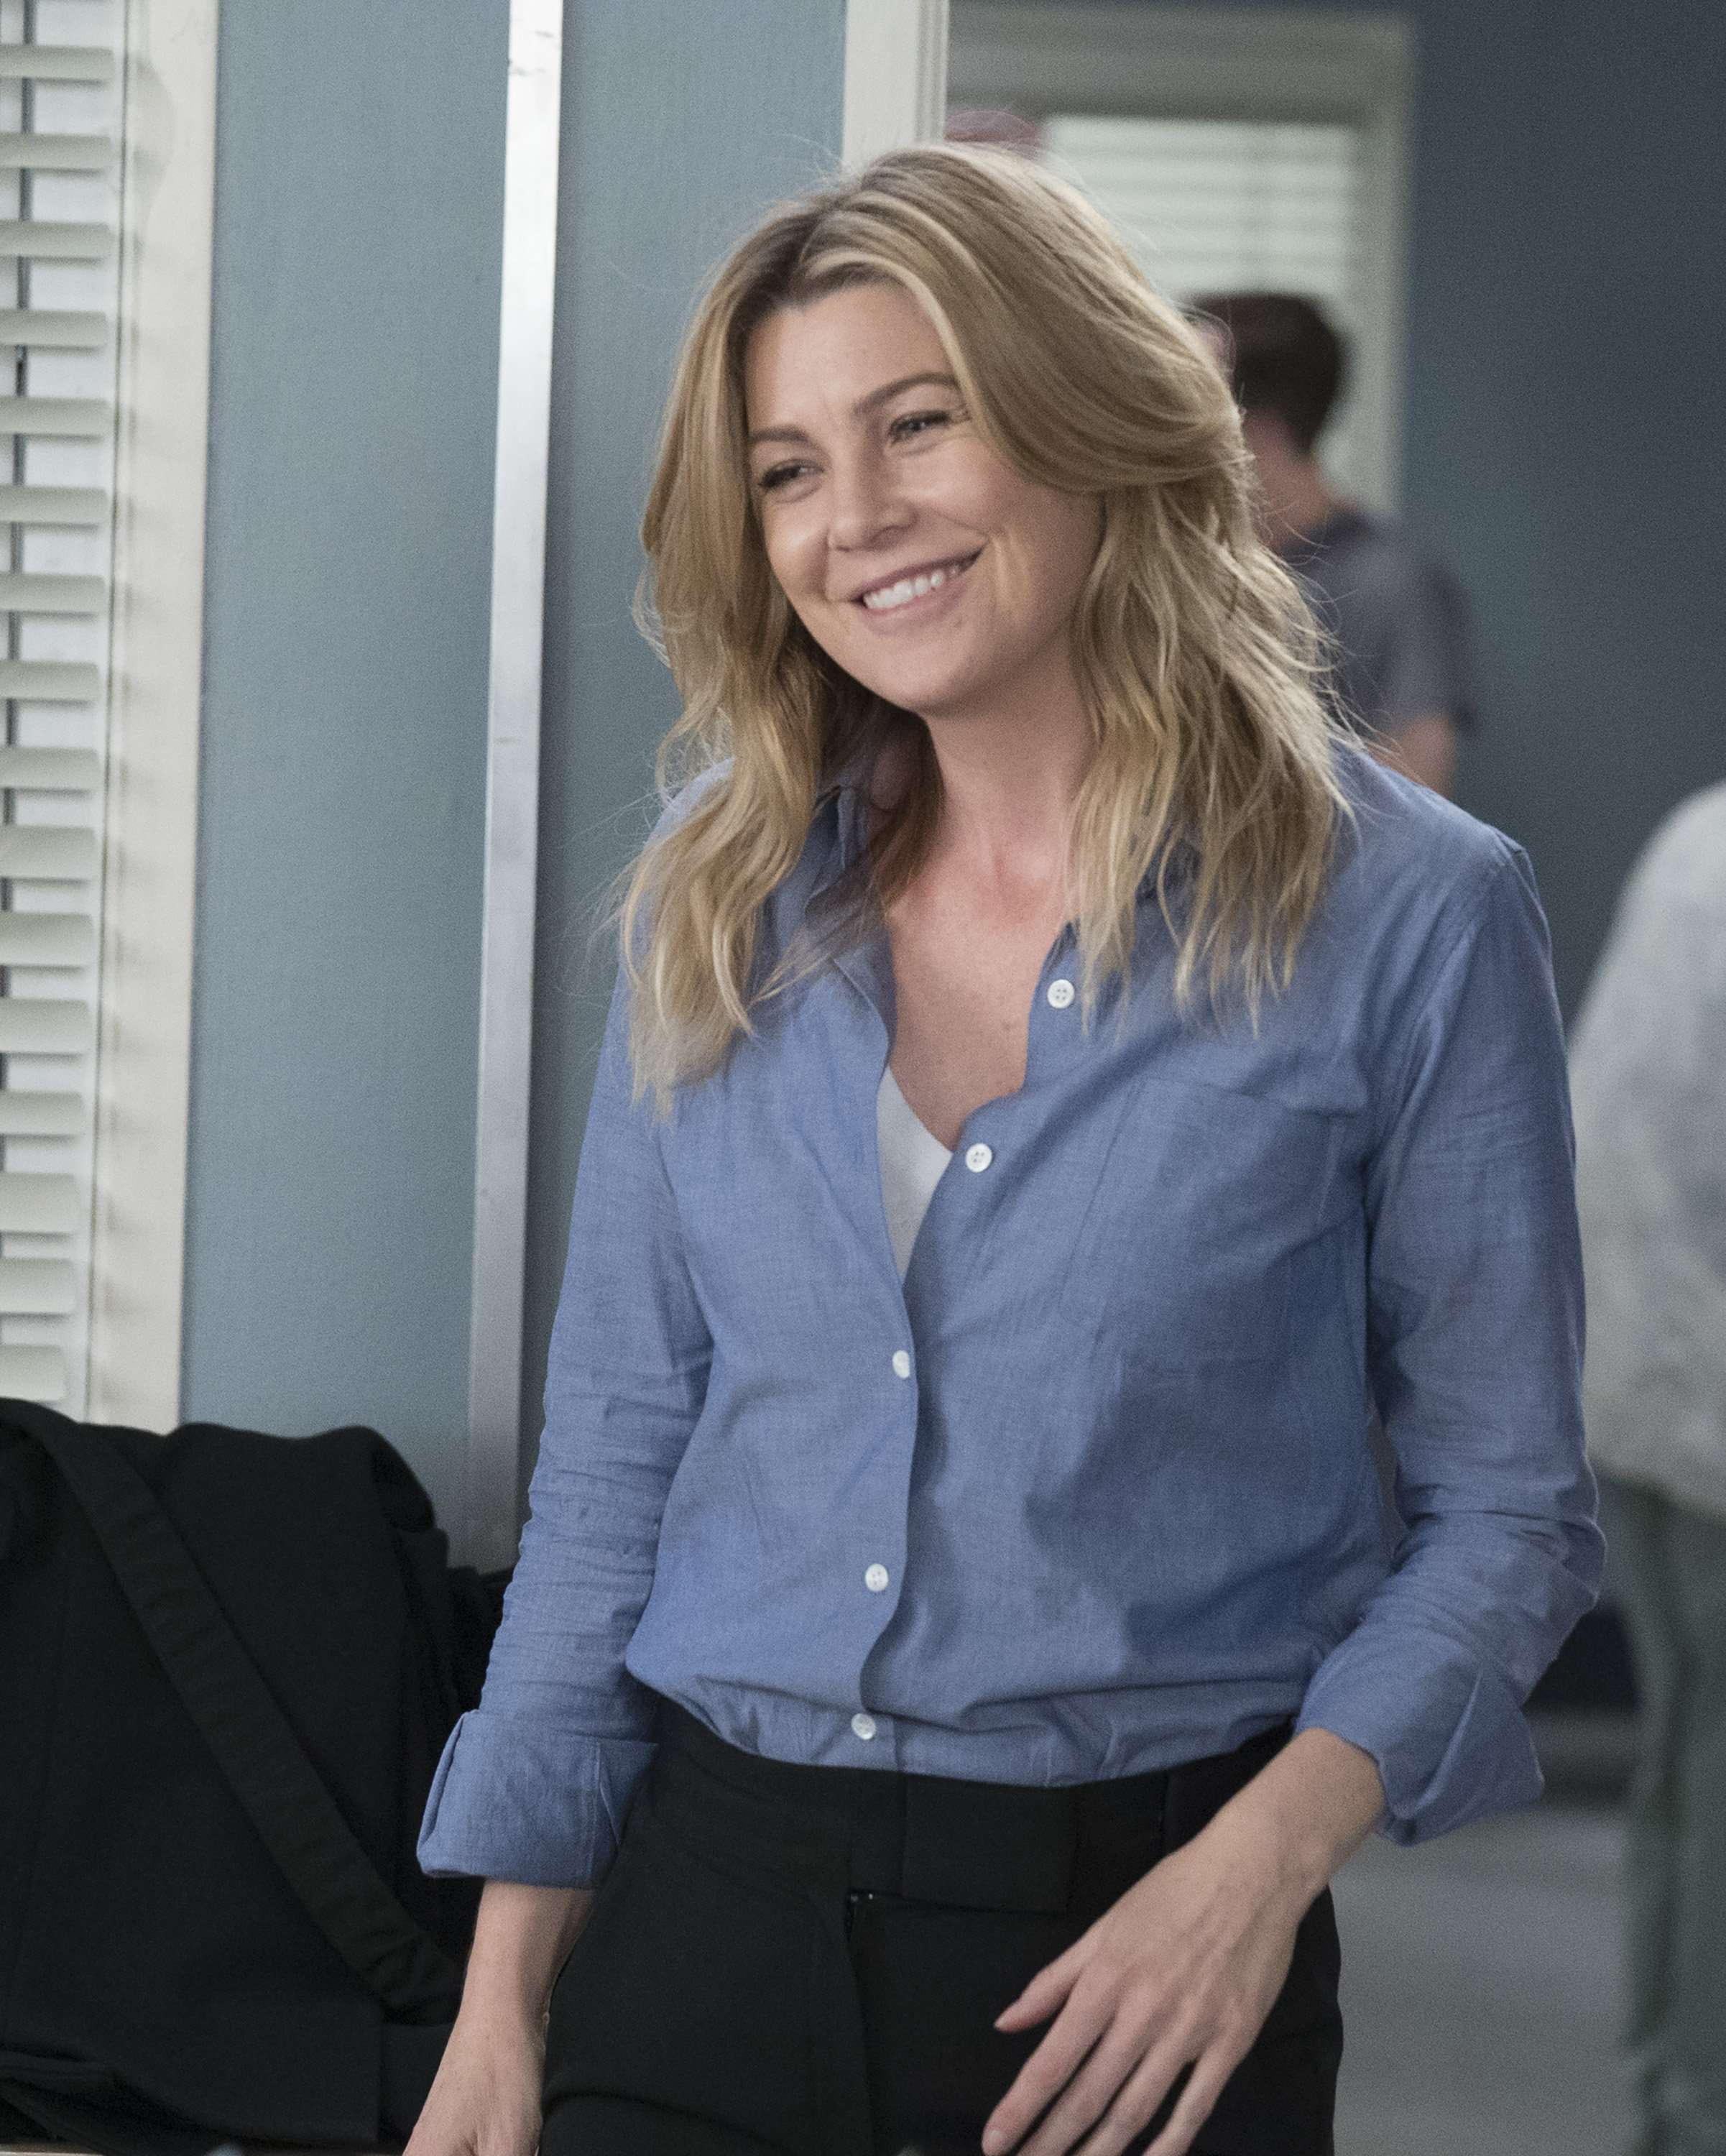 greys anat meredith makes - HD 2402×3000